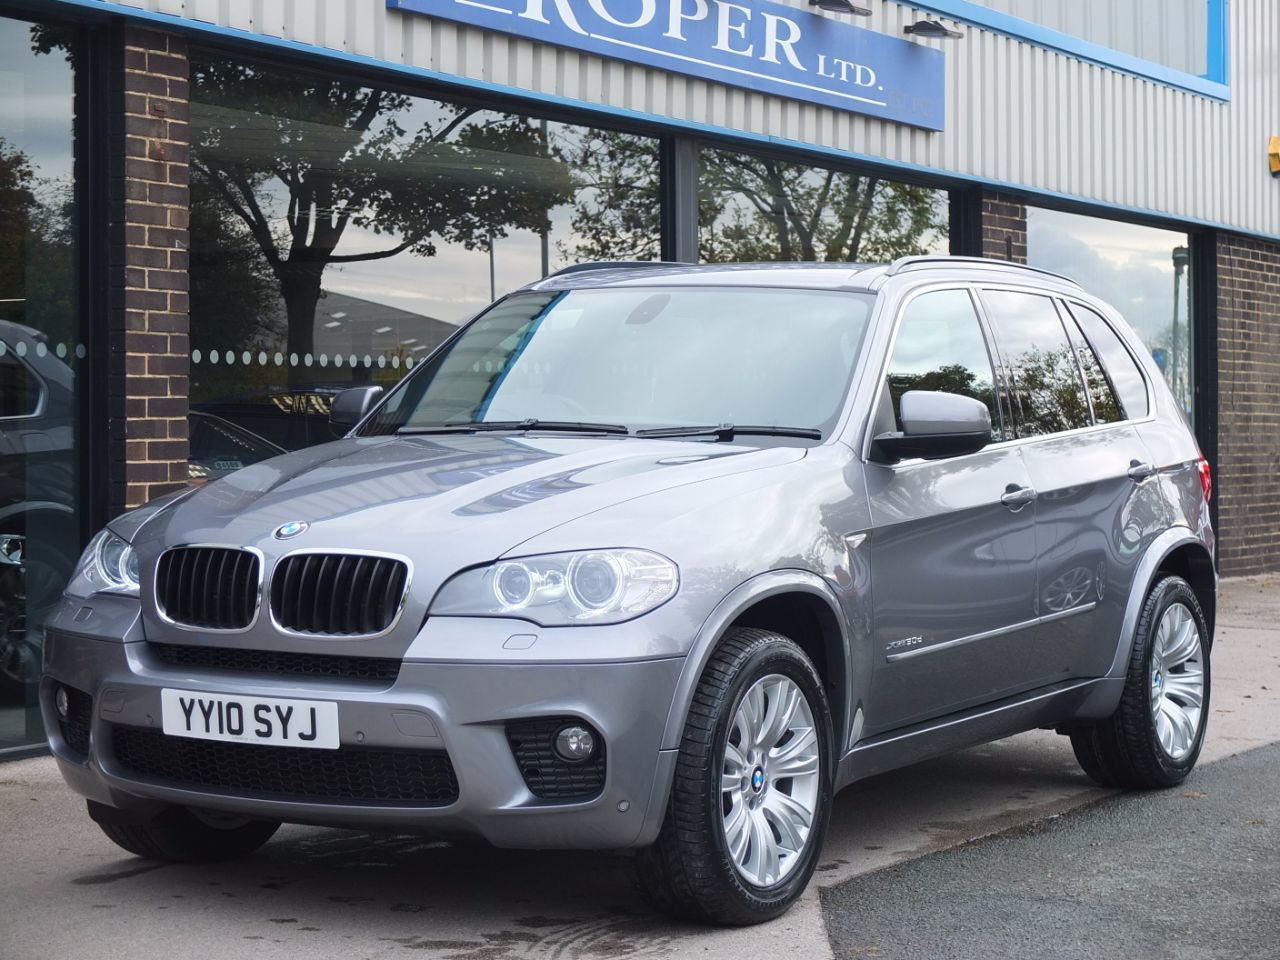 BMW X5 3.0 xDrive30d M Sport Auto Facelift Estate Diesel Space Grey MetallicBMW X5 3.0 xDrive30d M Sport Auto Facelift Estate Diesel Space Grey Metallic at fa Roper Ltd Bradford